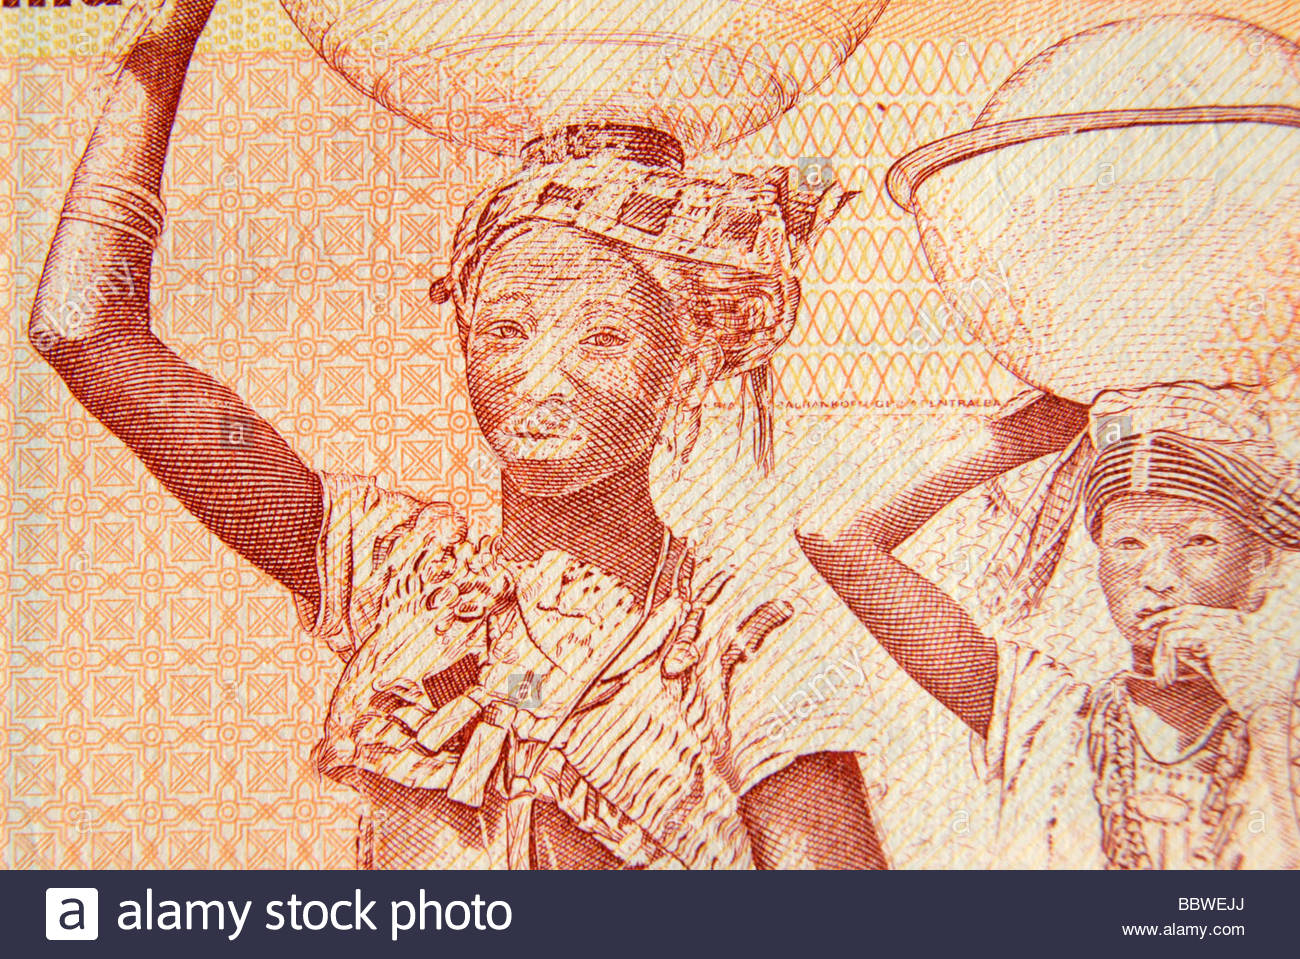 Fulani milk maids depicted on a Nigerian ten Naira note dating from 2007. - Stock Image